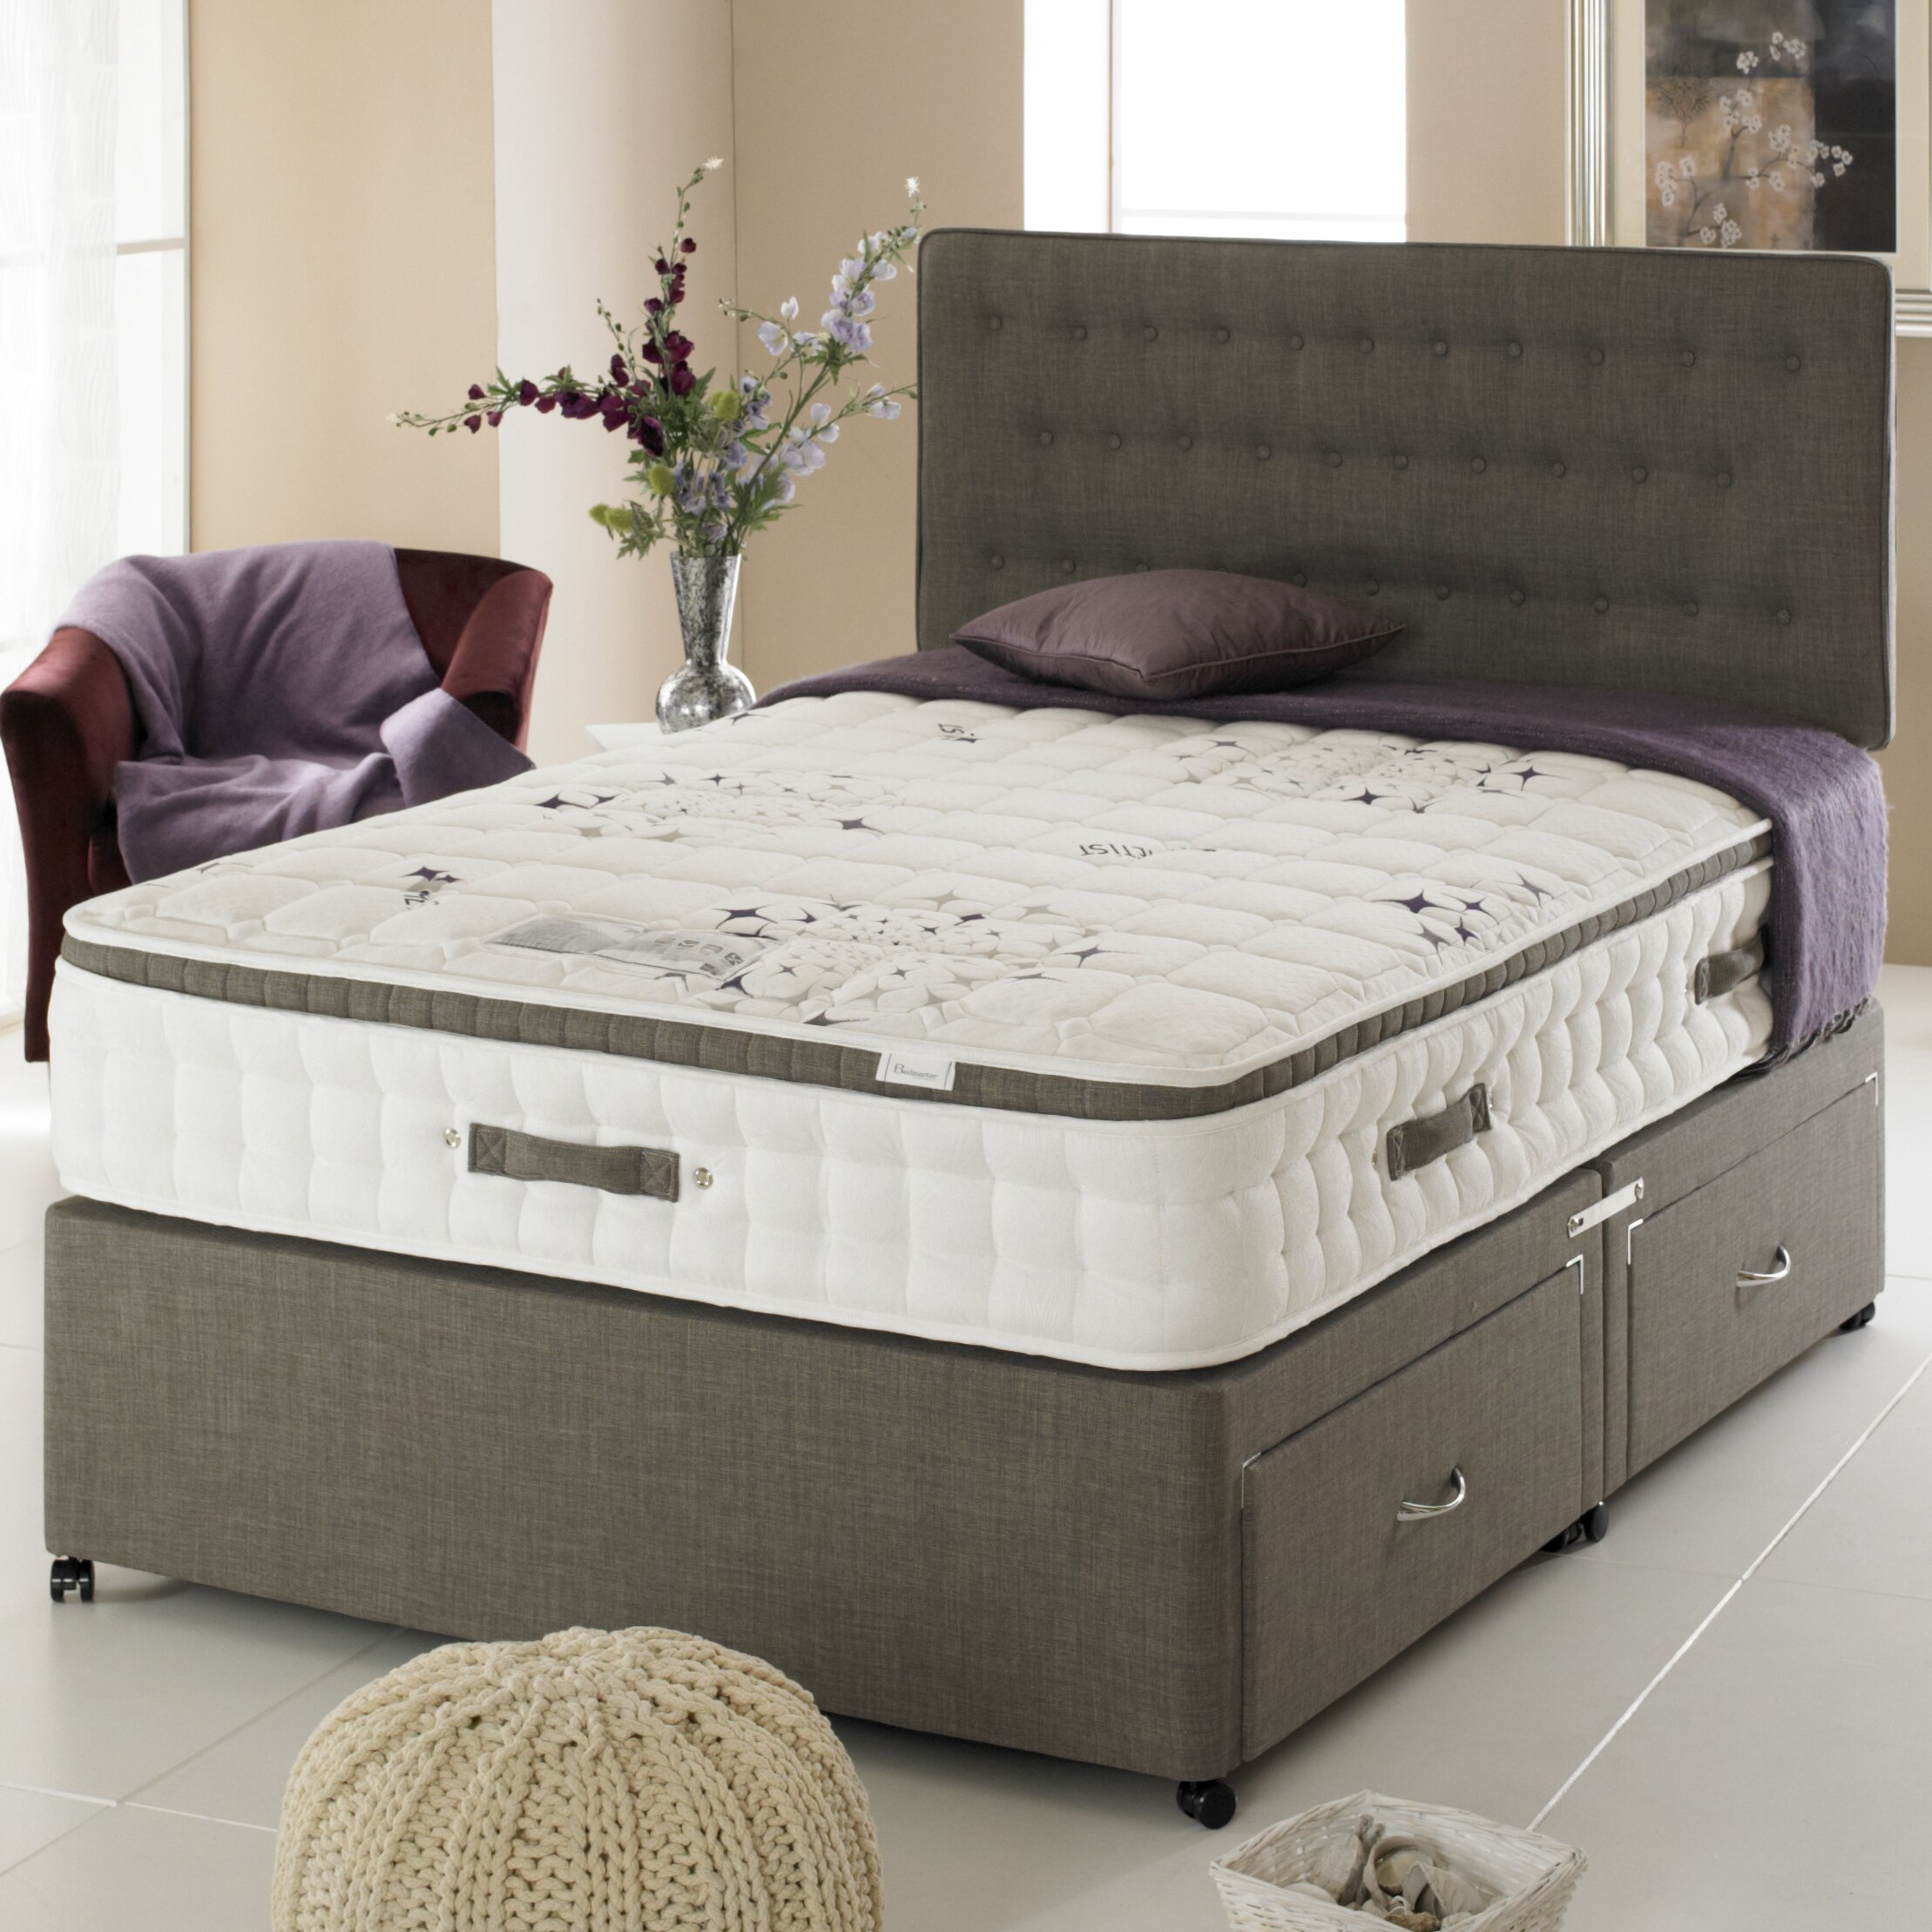 Home haus jade four drawer sprung 2500 divan bed for 4 drawer divan bed sale